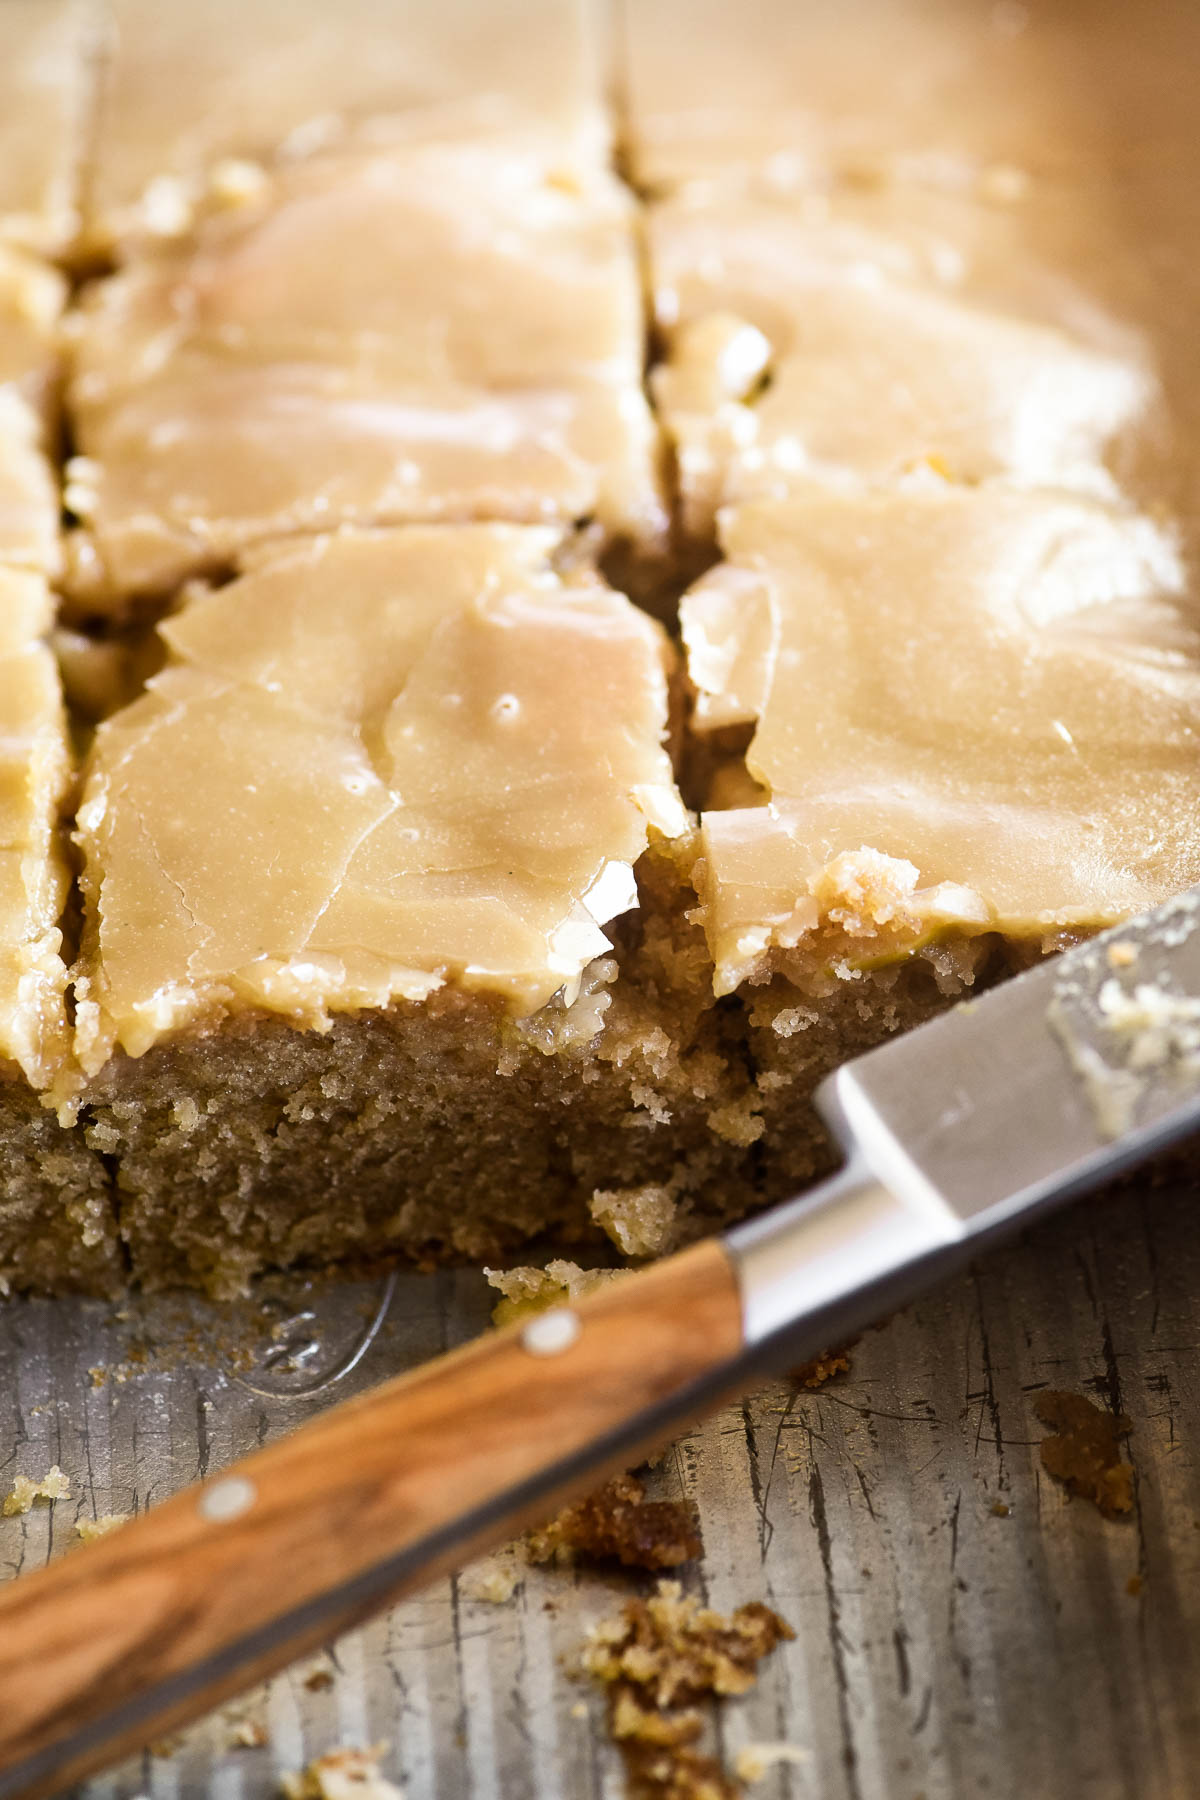 Caramel apple sheet cake in the cake pan, sliced into pieces.